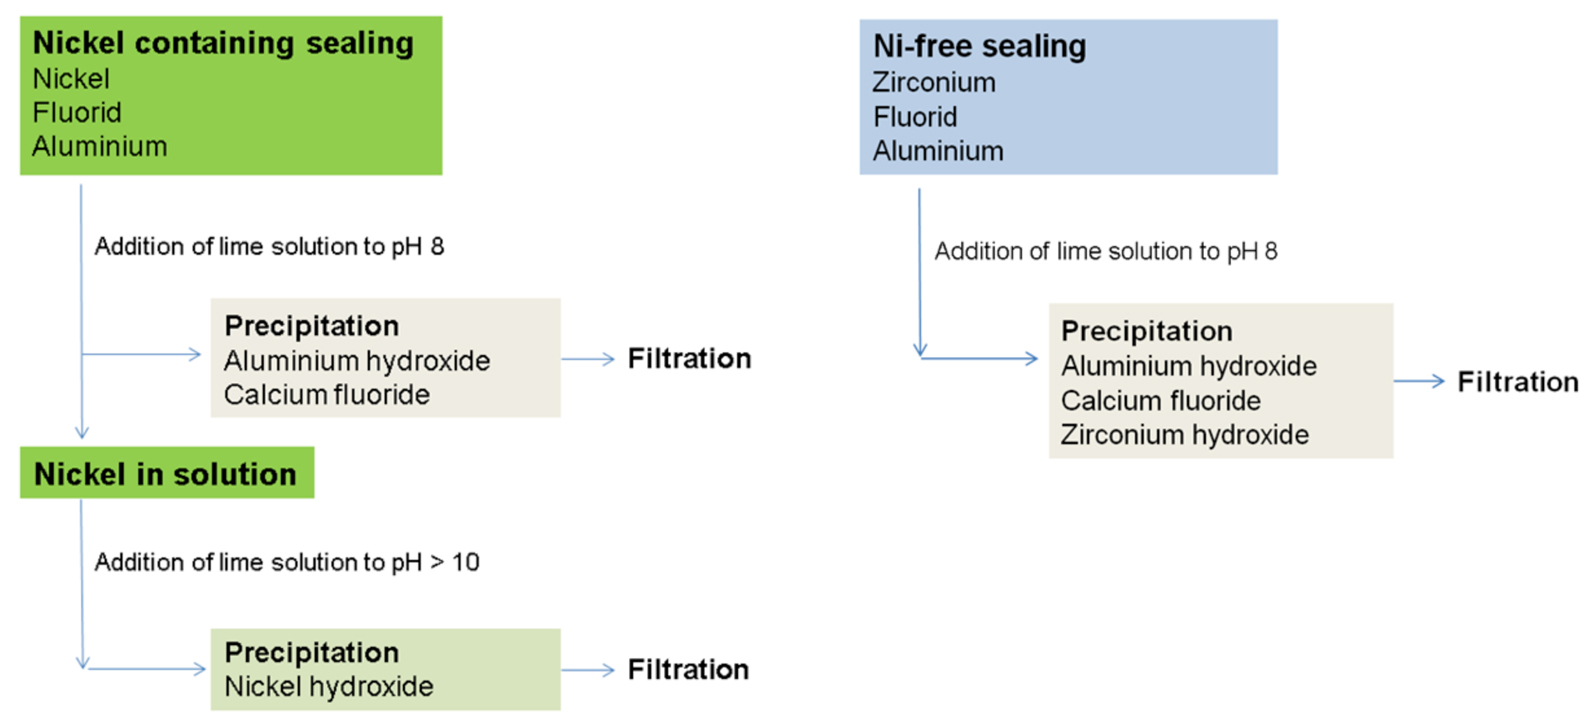 Fig. 4: Waste water treatment of nickel containing and nickel free processes